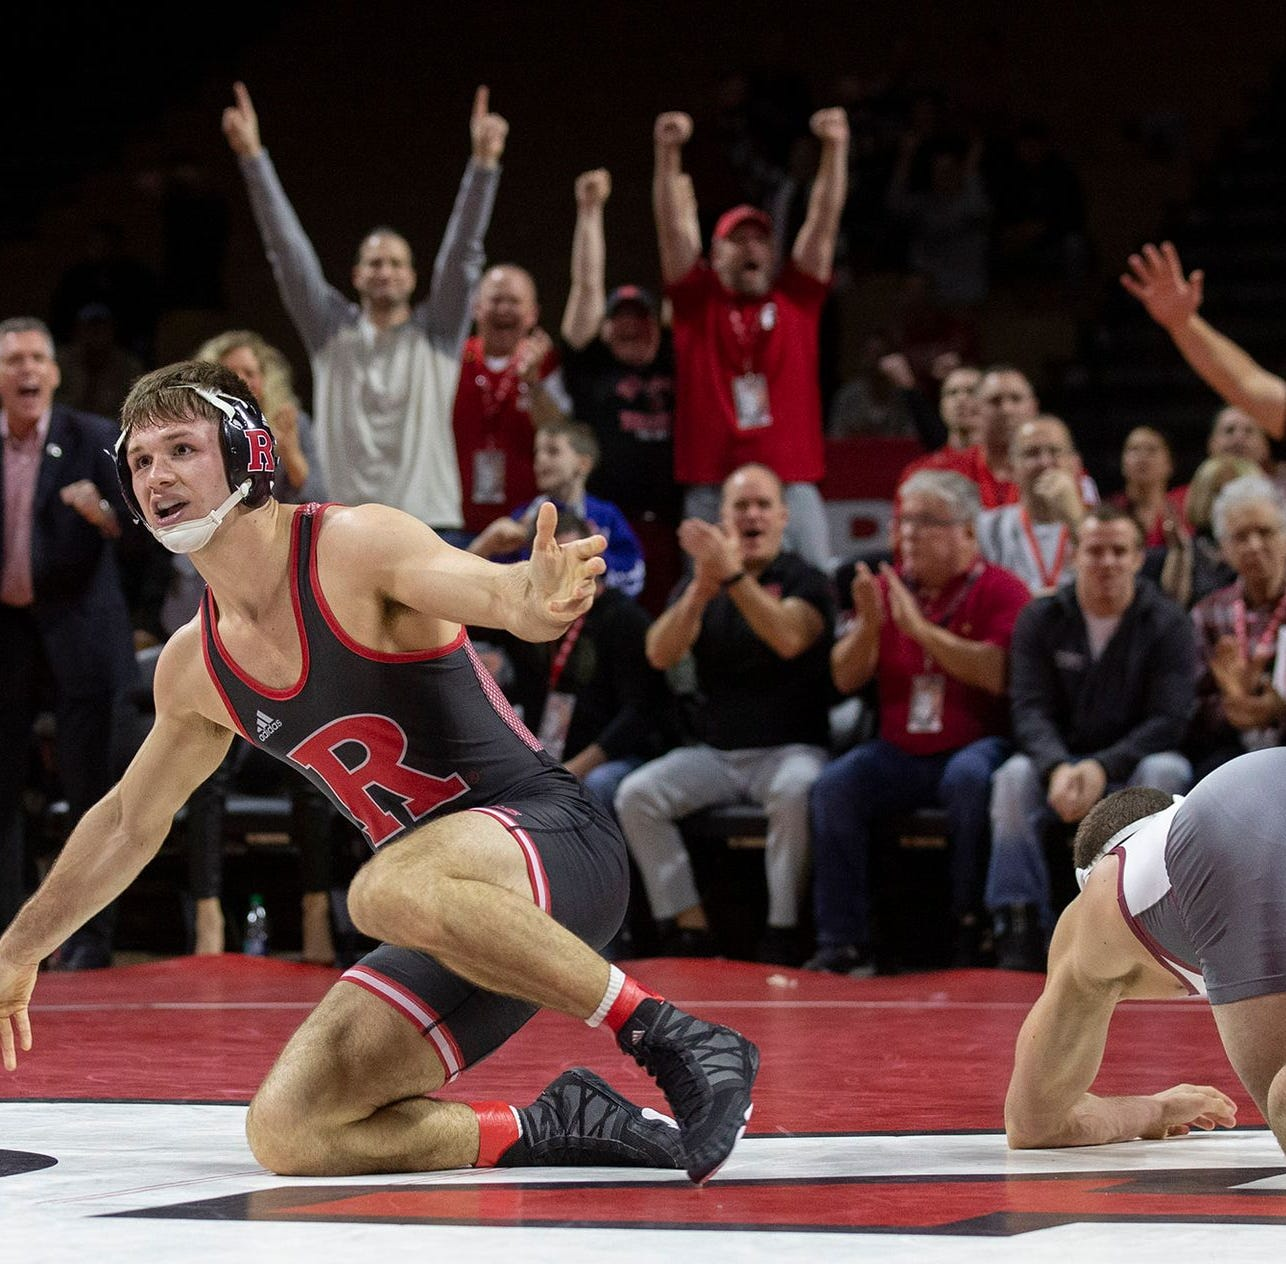 College wrestling: Rutgers grinds out win over Rider in renewal of rivalry